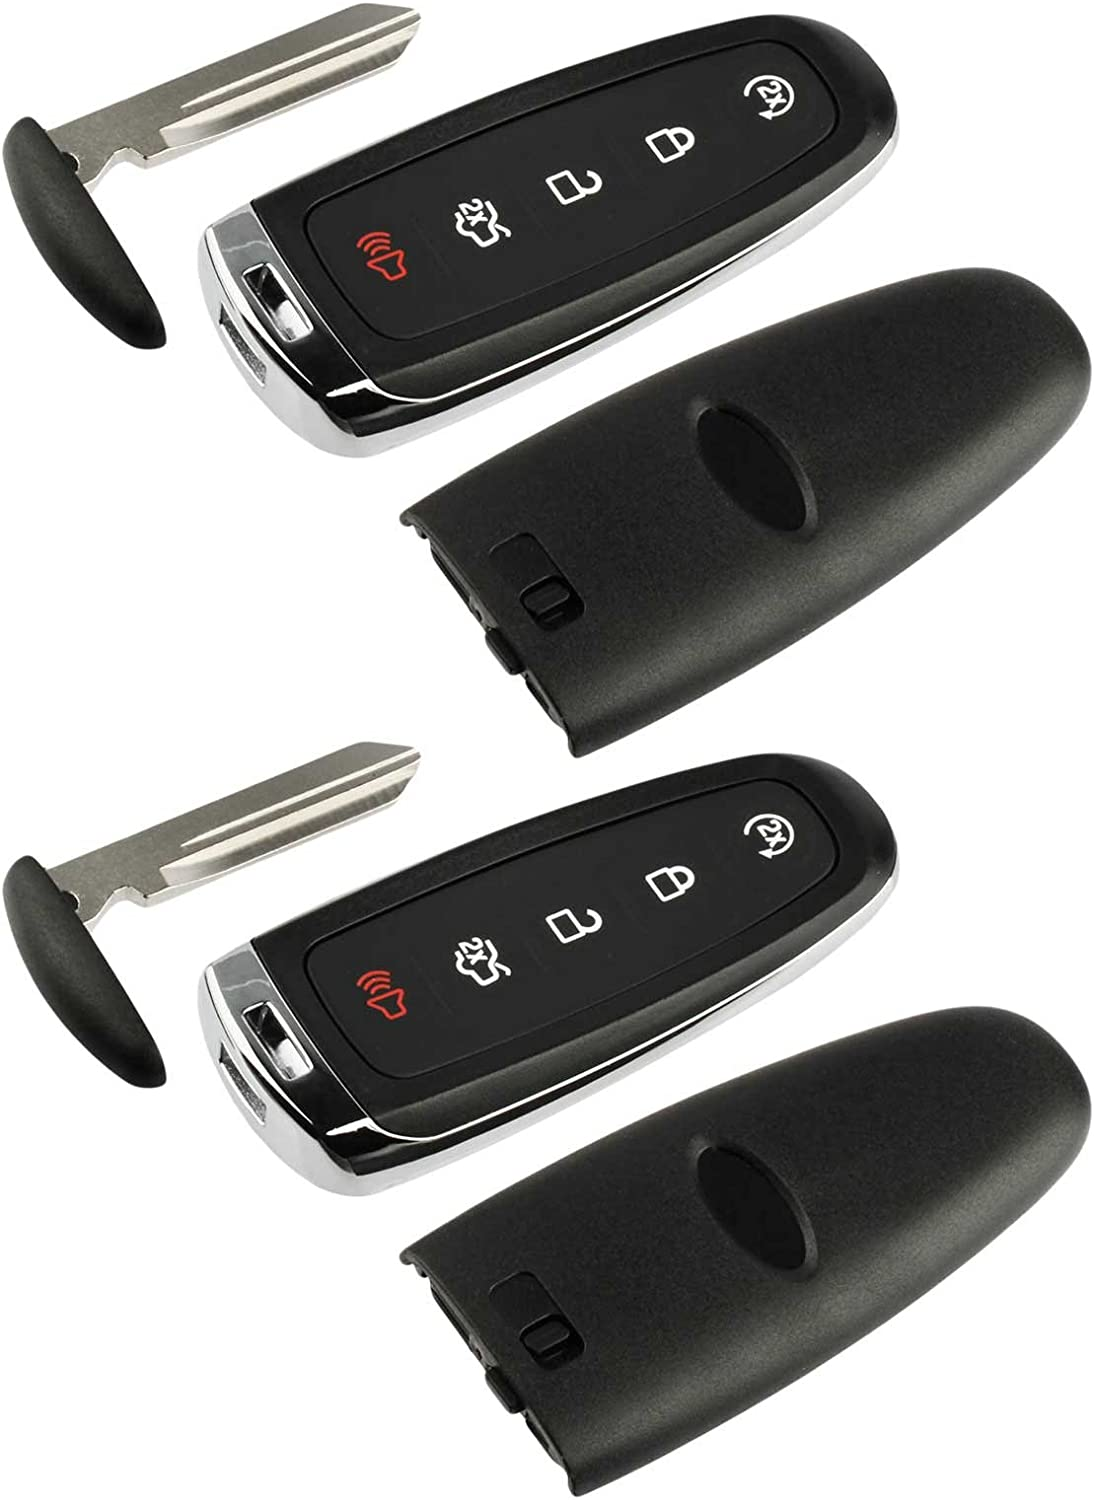 M3N5WY8609 Shell Case Key Fob Keyless Entry Remote fits Ford Edge Expedition Explorer Flex Focus Taurus Lincoln MKX MKS MKT Navigator 2011 2012 2013 2014 2015 2016